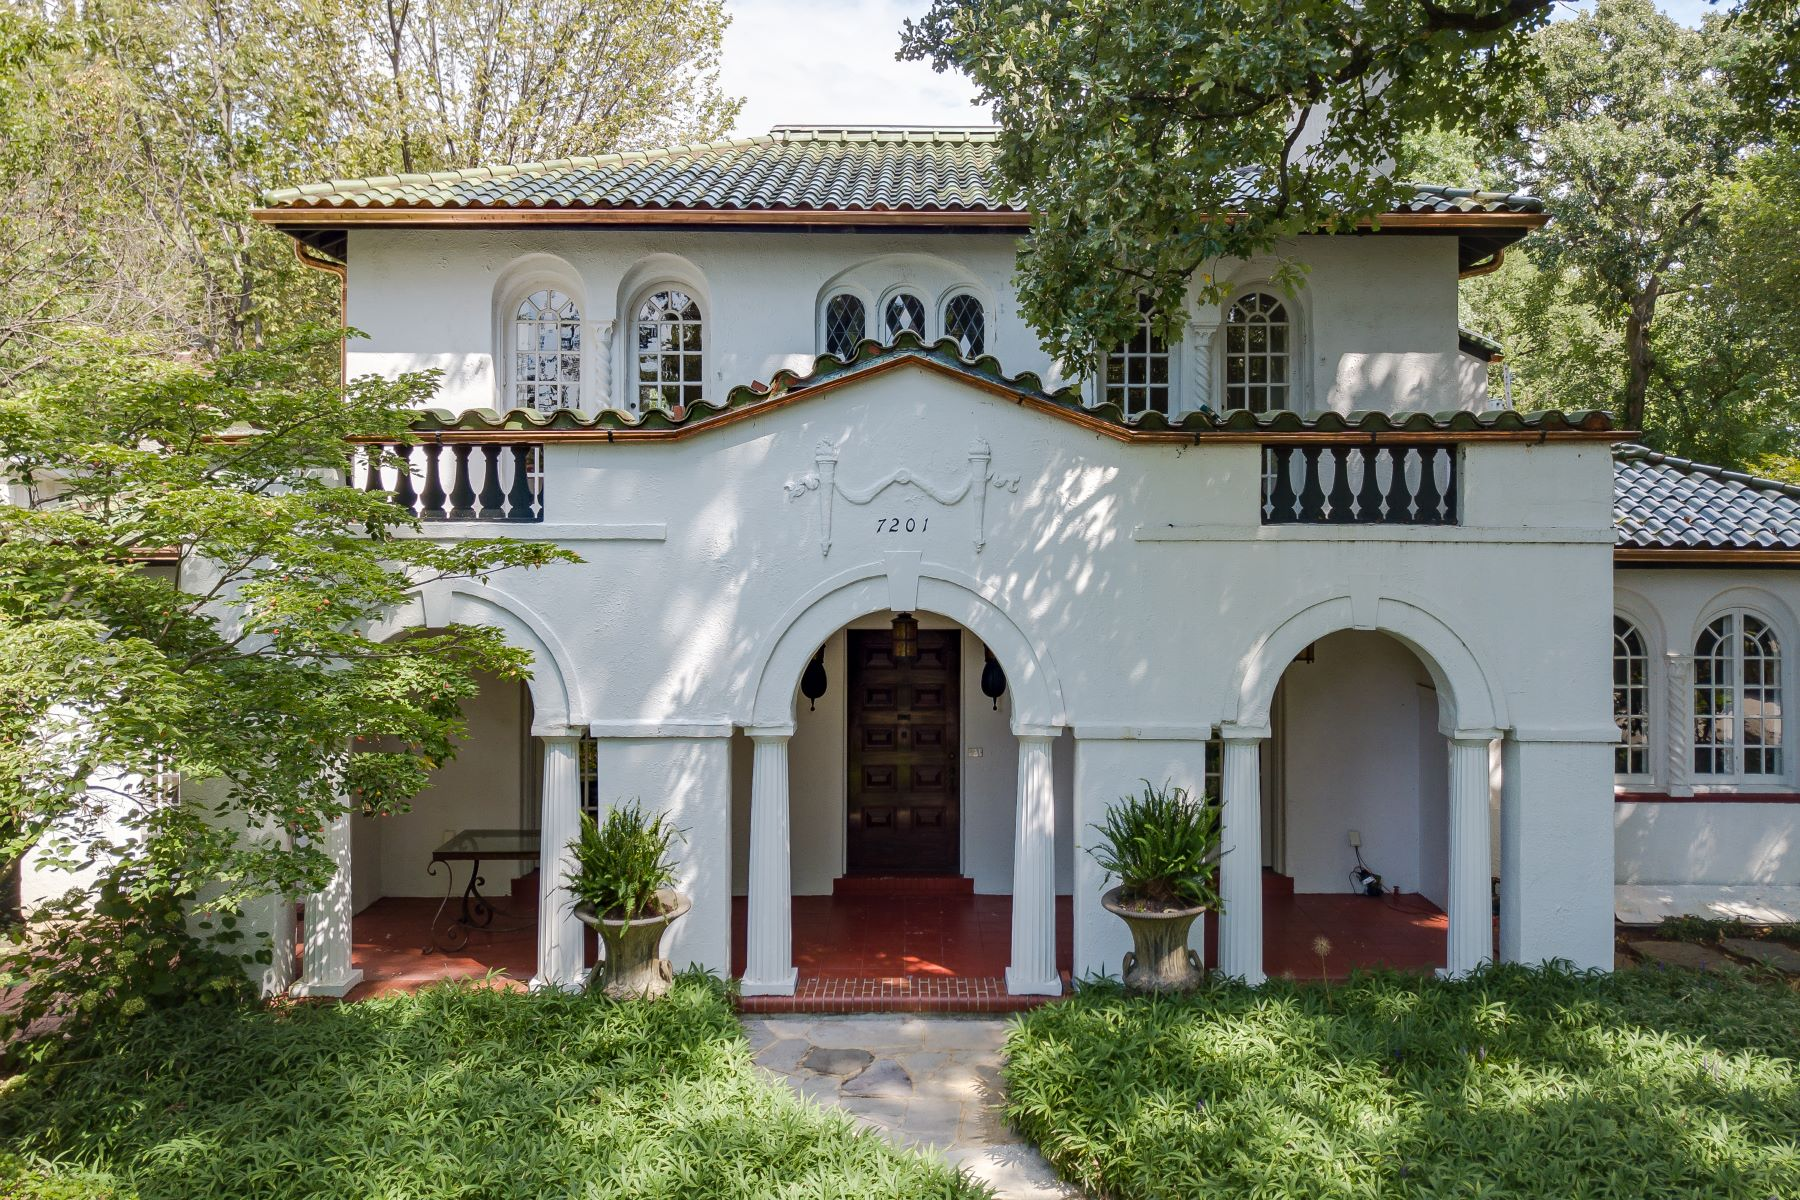 Additional photo for property listing at Iconic Spanish Revival on a Private Street in University City 7201 Kingsbury Boulevard University City, Missouri 63130 United States